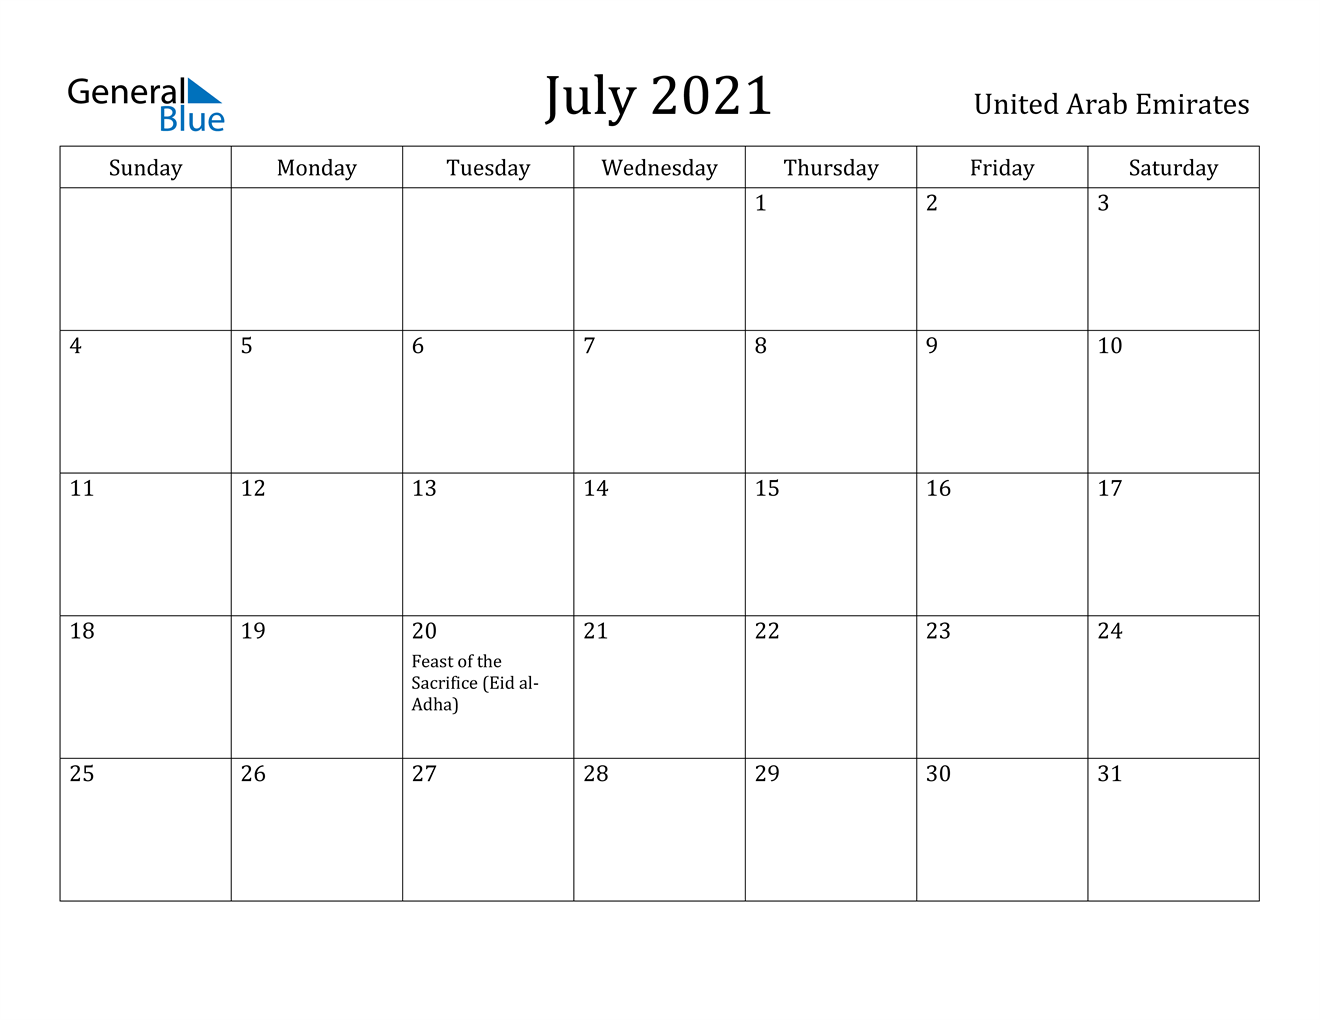 July 2021 Calendar - United Arab Emirates